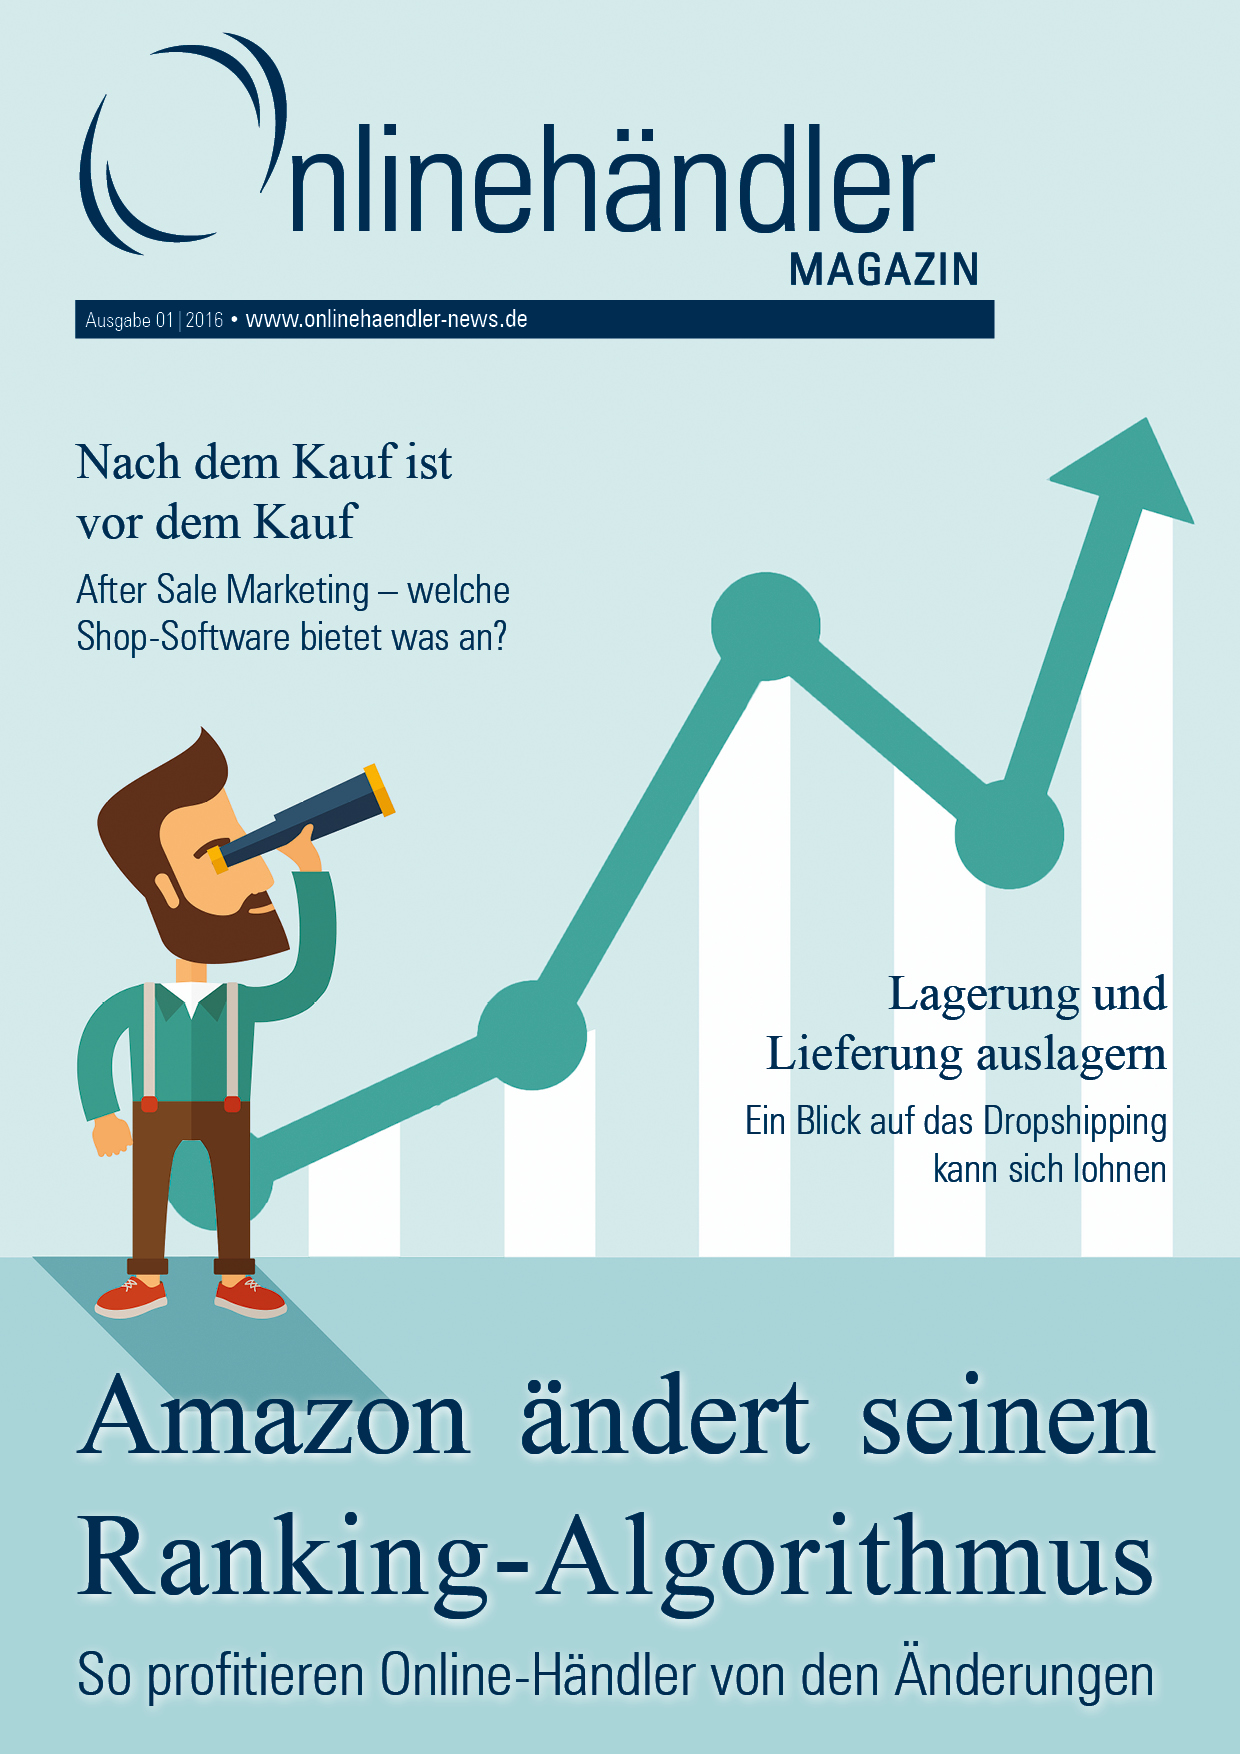 Neuer Amazon Ranking-Algorithmus